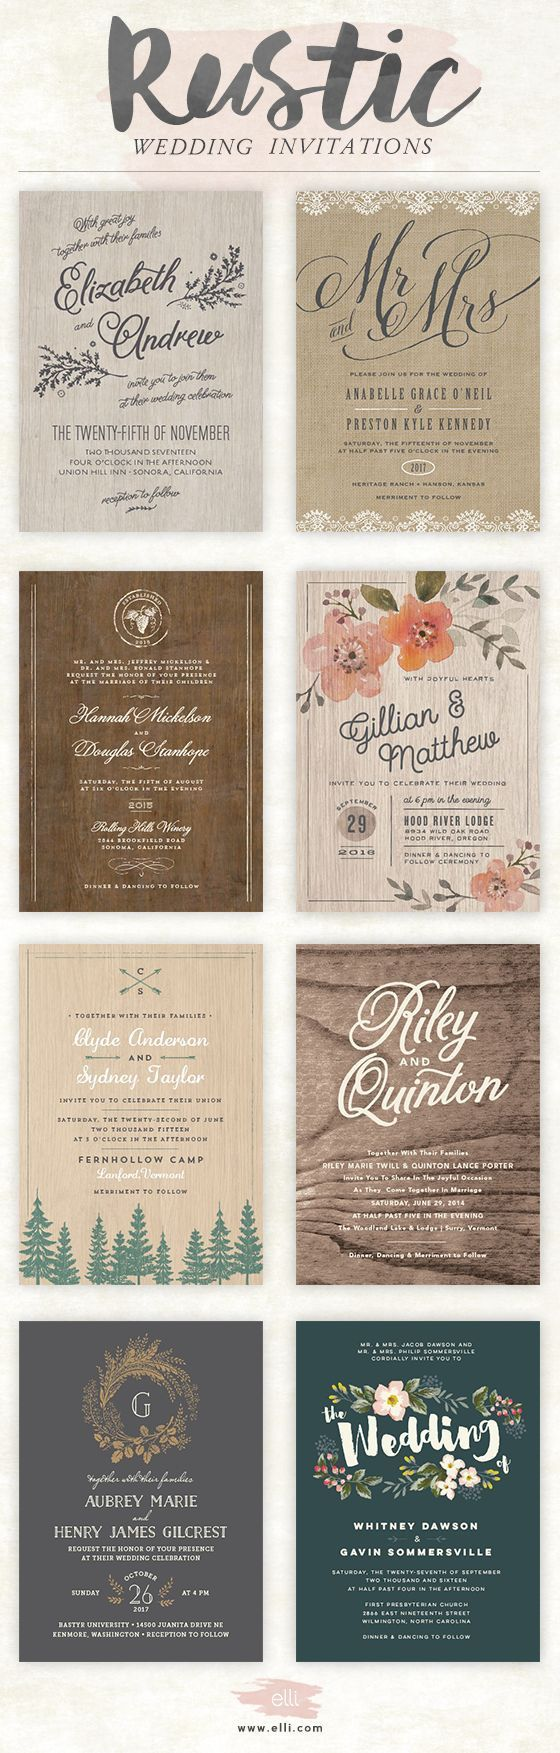 Rustic wedding invitations bellacollina